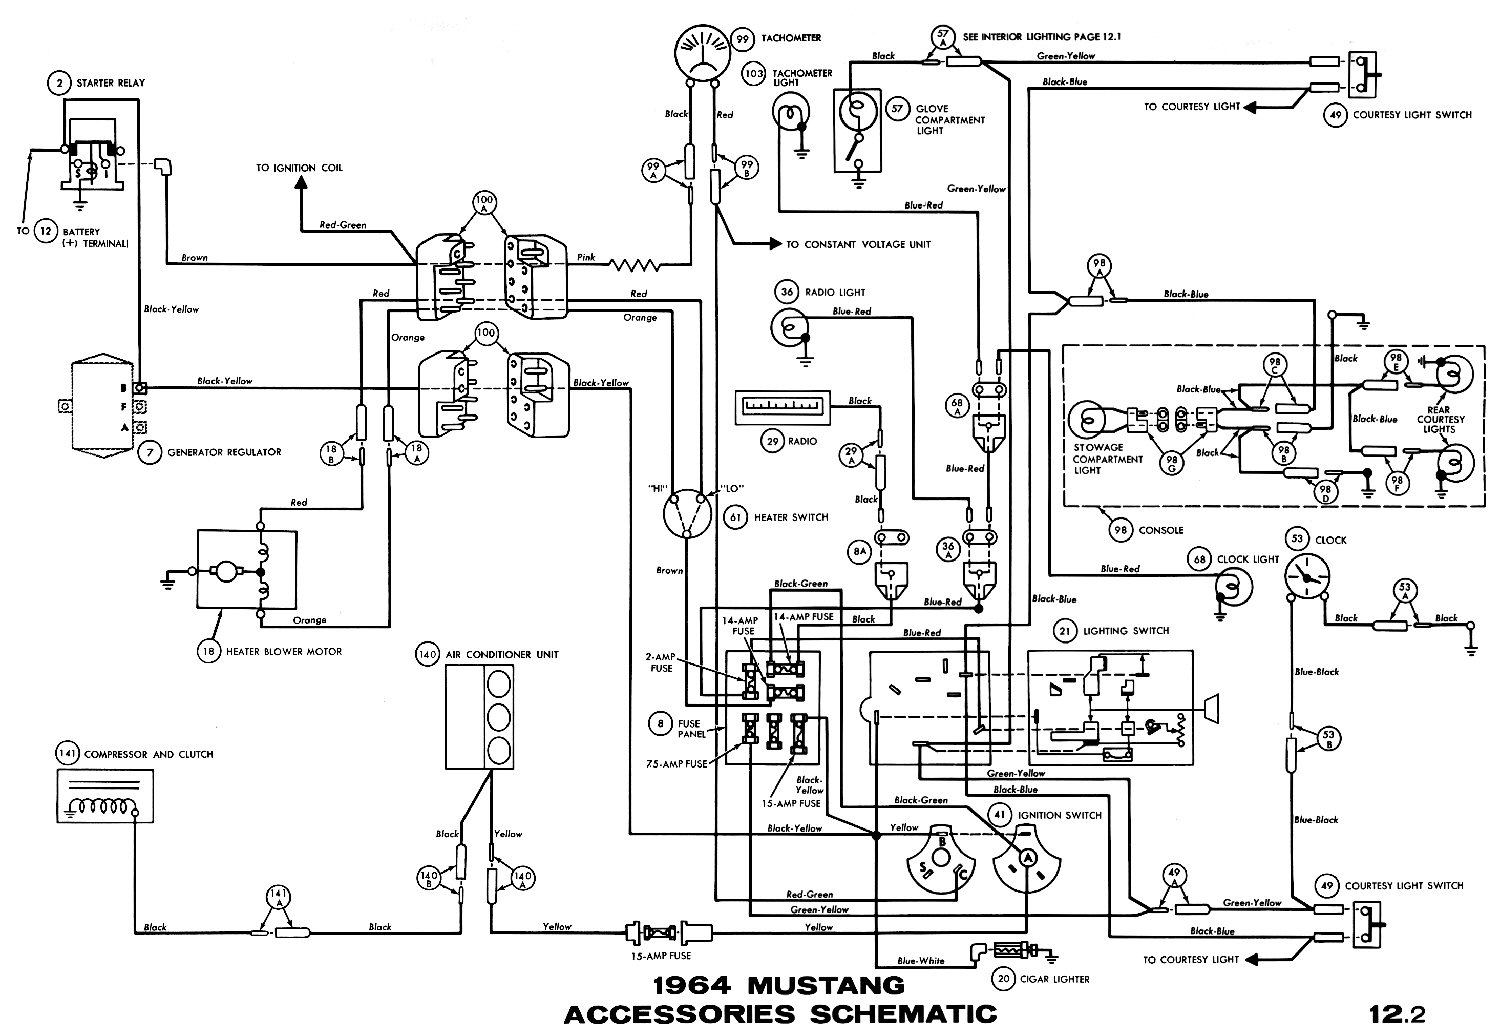 66 ford mustang wiring diagram with 1964 Mustang Wiring Diagrams on 70 Mustang Ignition Wiring Diagram in addition 1968 Mustang Wiring Diagram Vacuum Schematics besides 1964 Mustang Wiring Diagrams as well 60x09 Ford 250 1968 F250 Keeps Acting Battery Dead besides 1968 Mustang Wiring Diagram Vacuum Schematics.